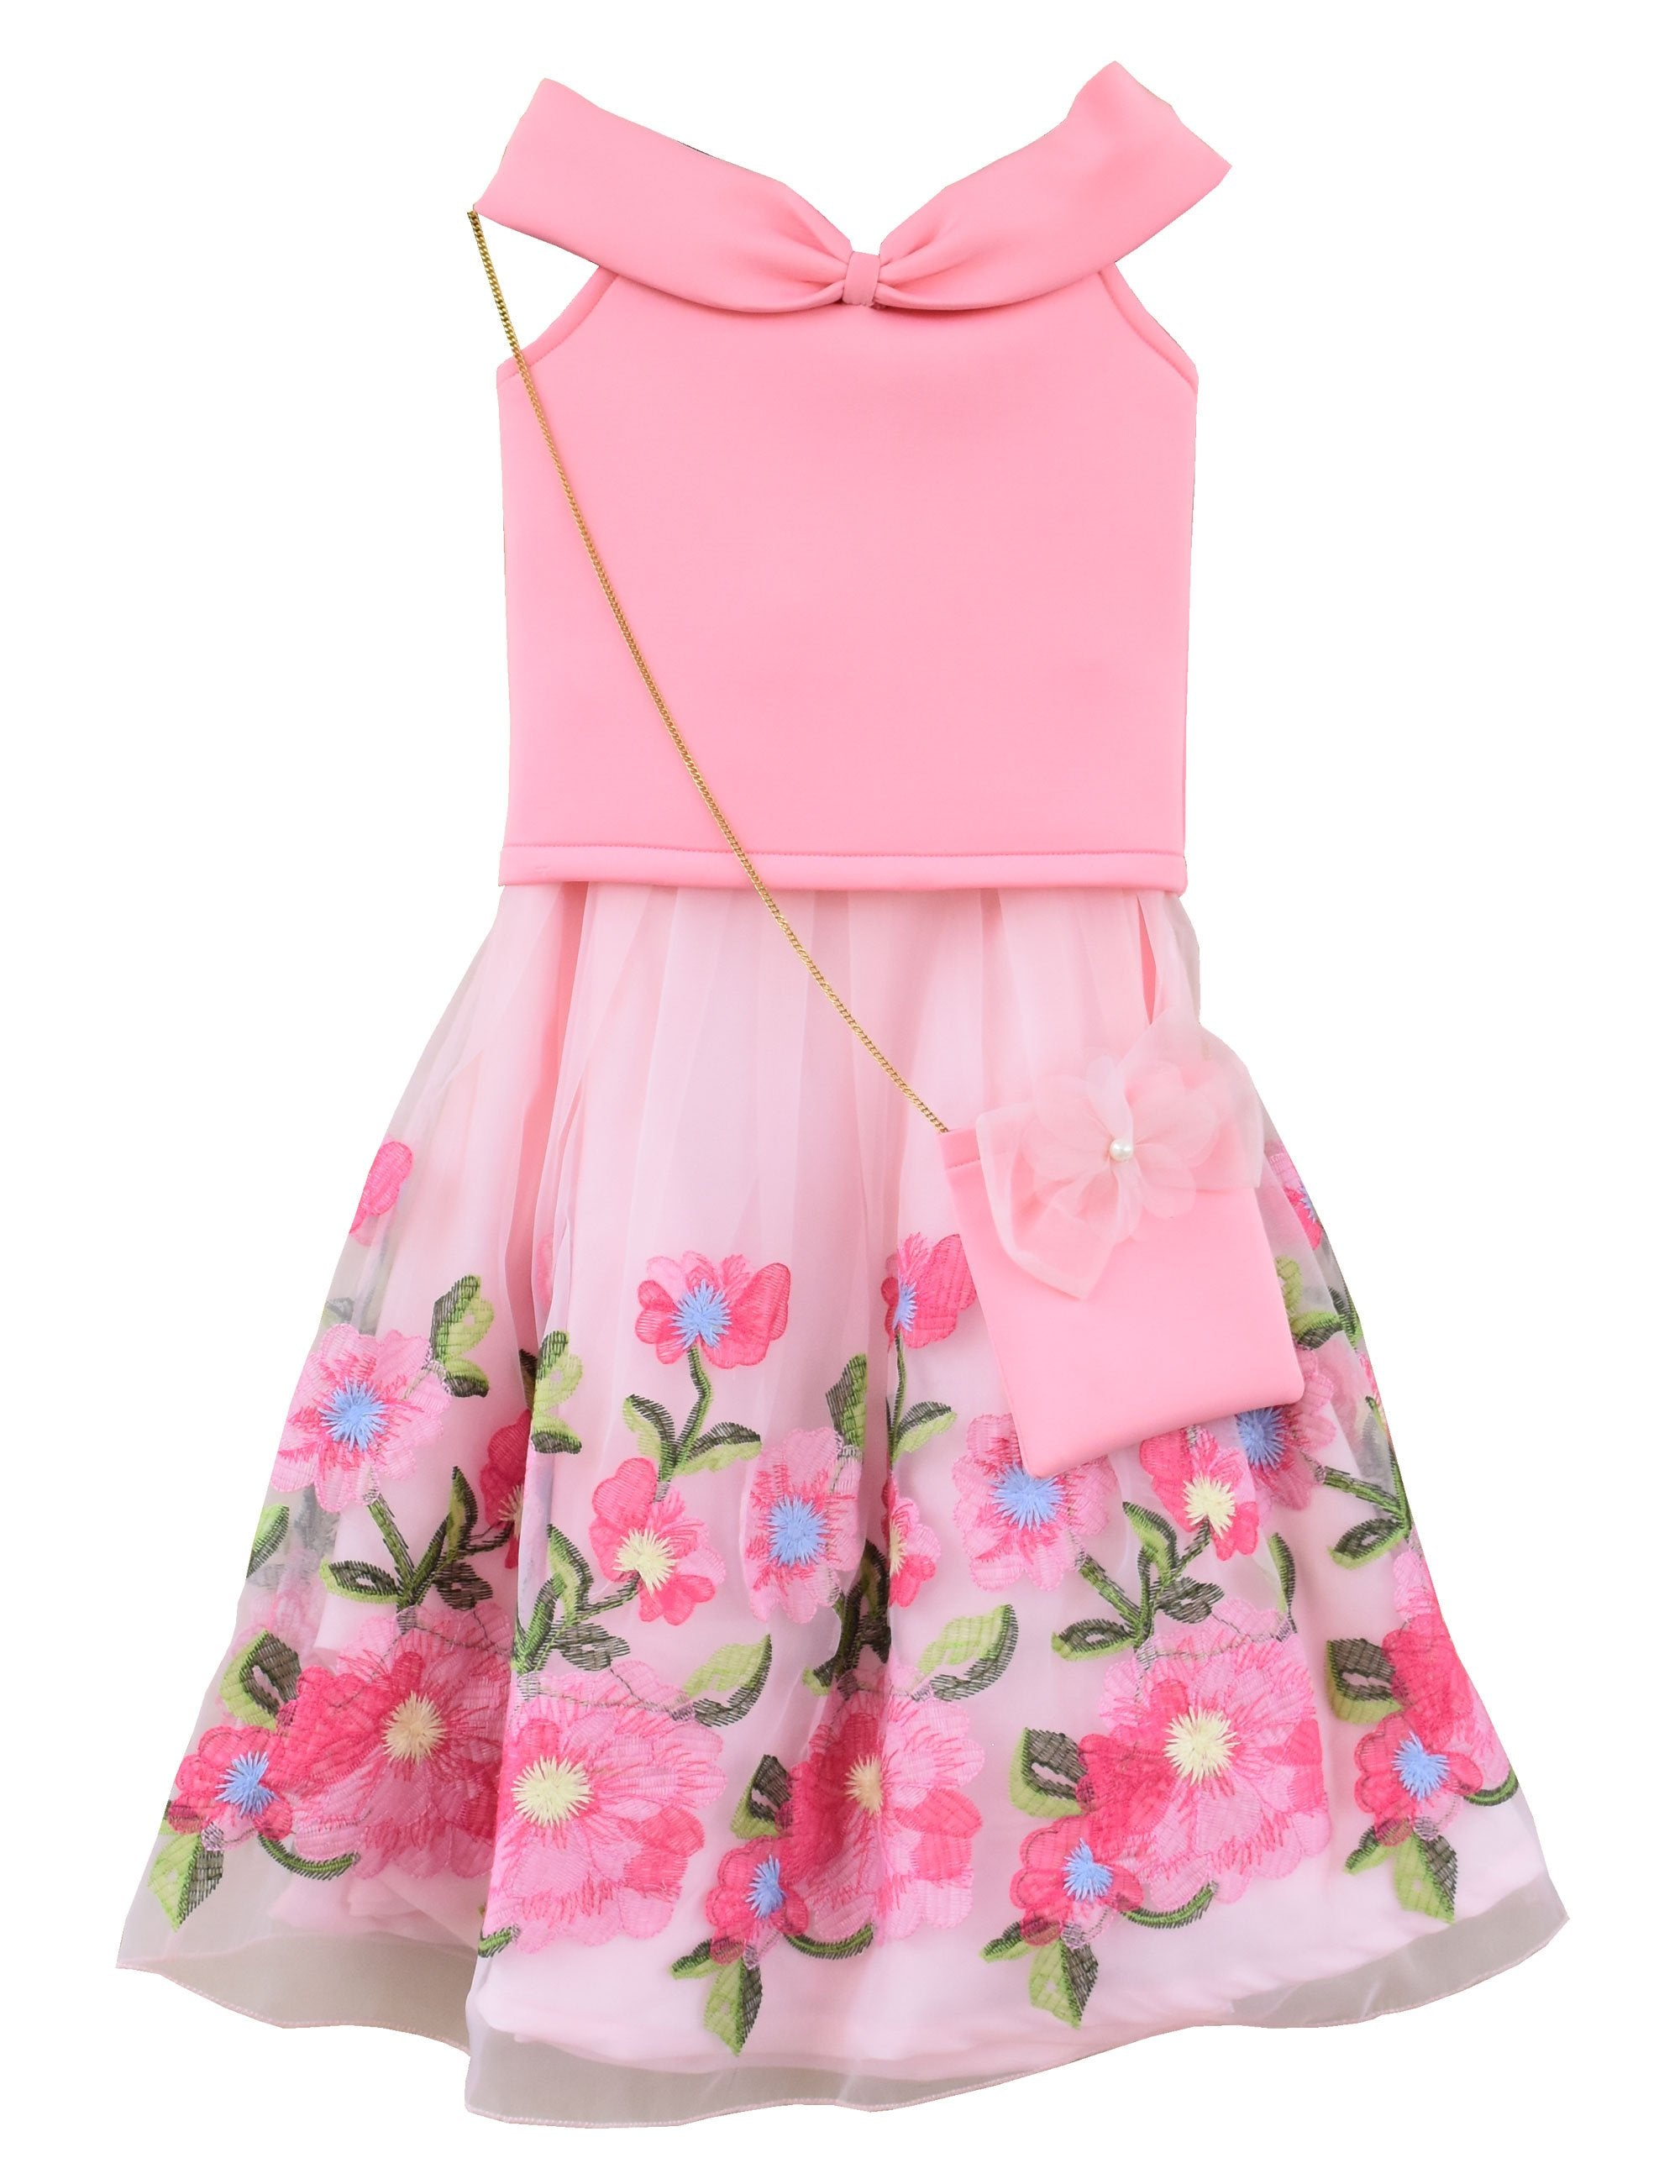 Top with Skirt in Pink Colour